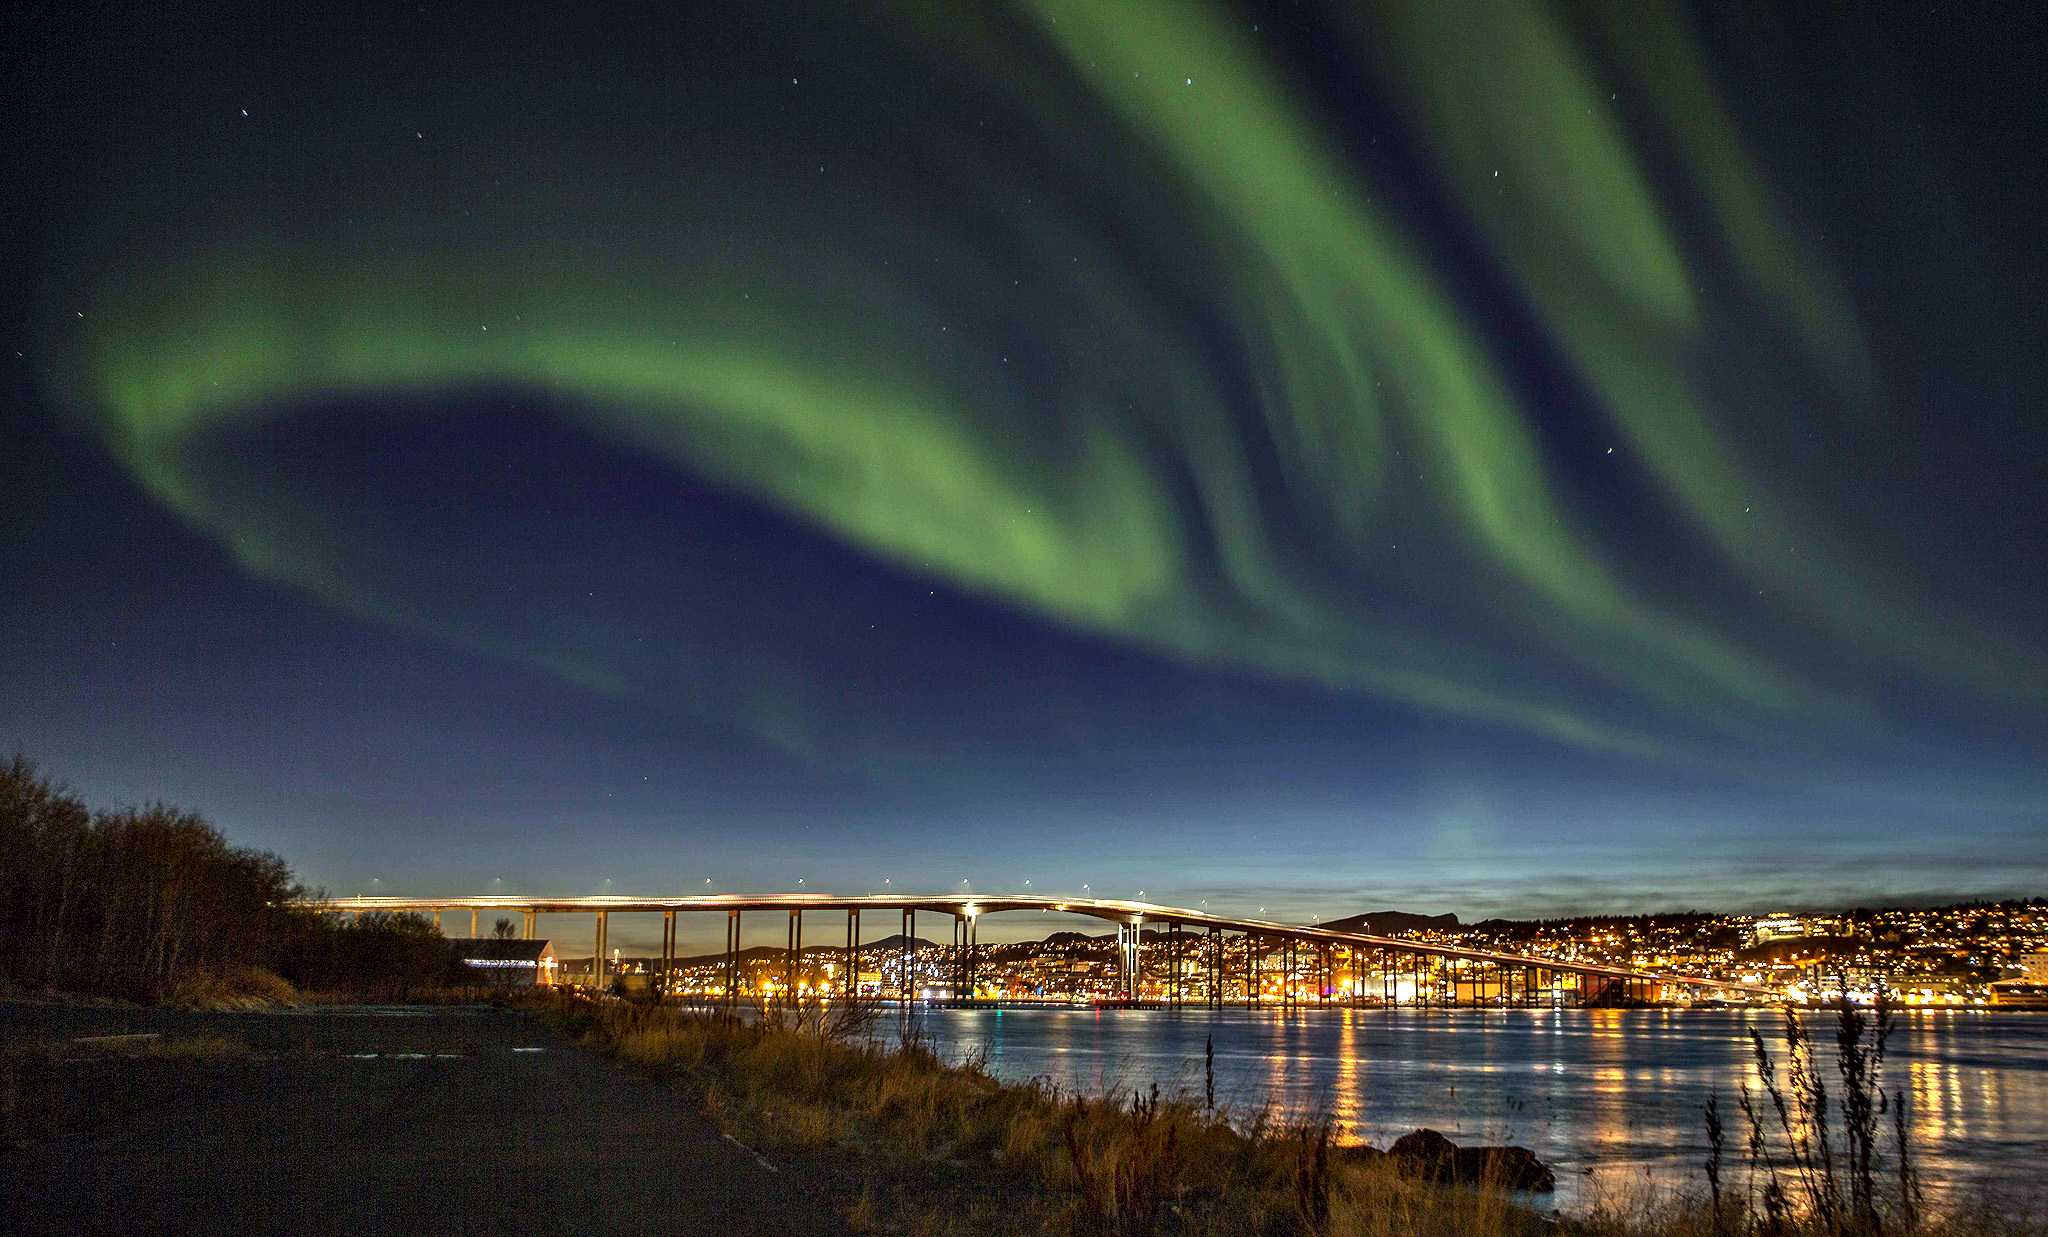 Northern lights (Aurora borelias) are seen over the city of Tromso in northern Norway.